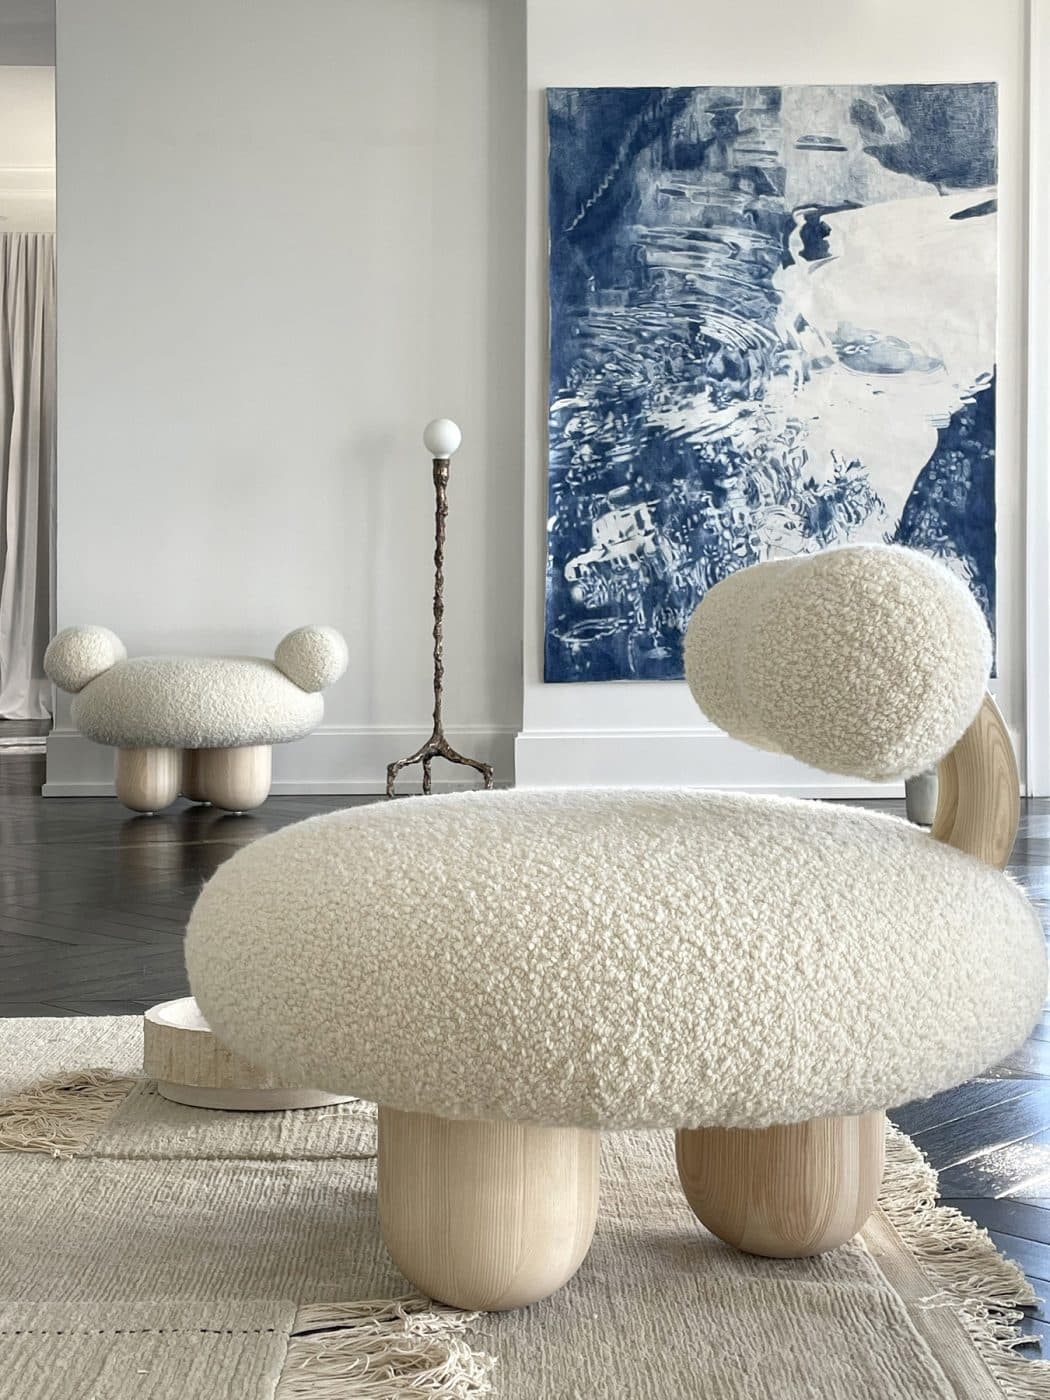 Franceschini's Bling Bling chair and ottoman in the living area of Galerie Philia's staged apartment in New York's Walker Tower